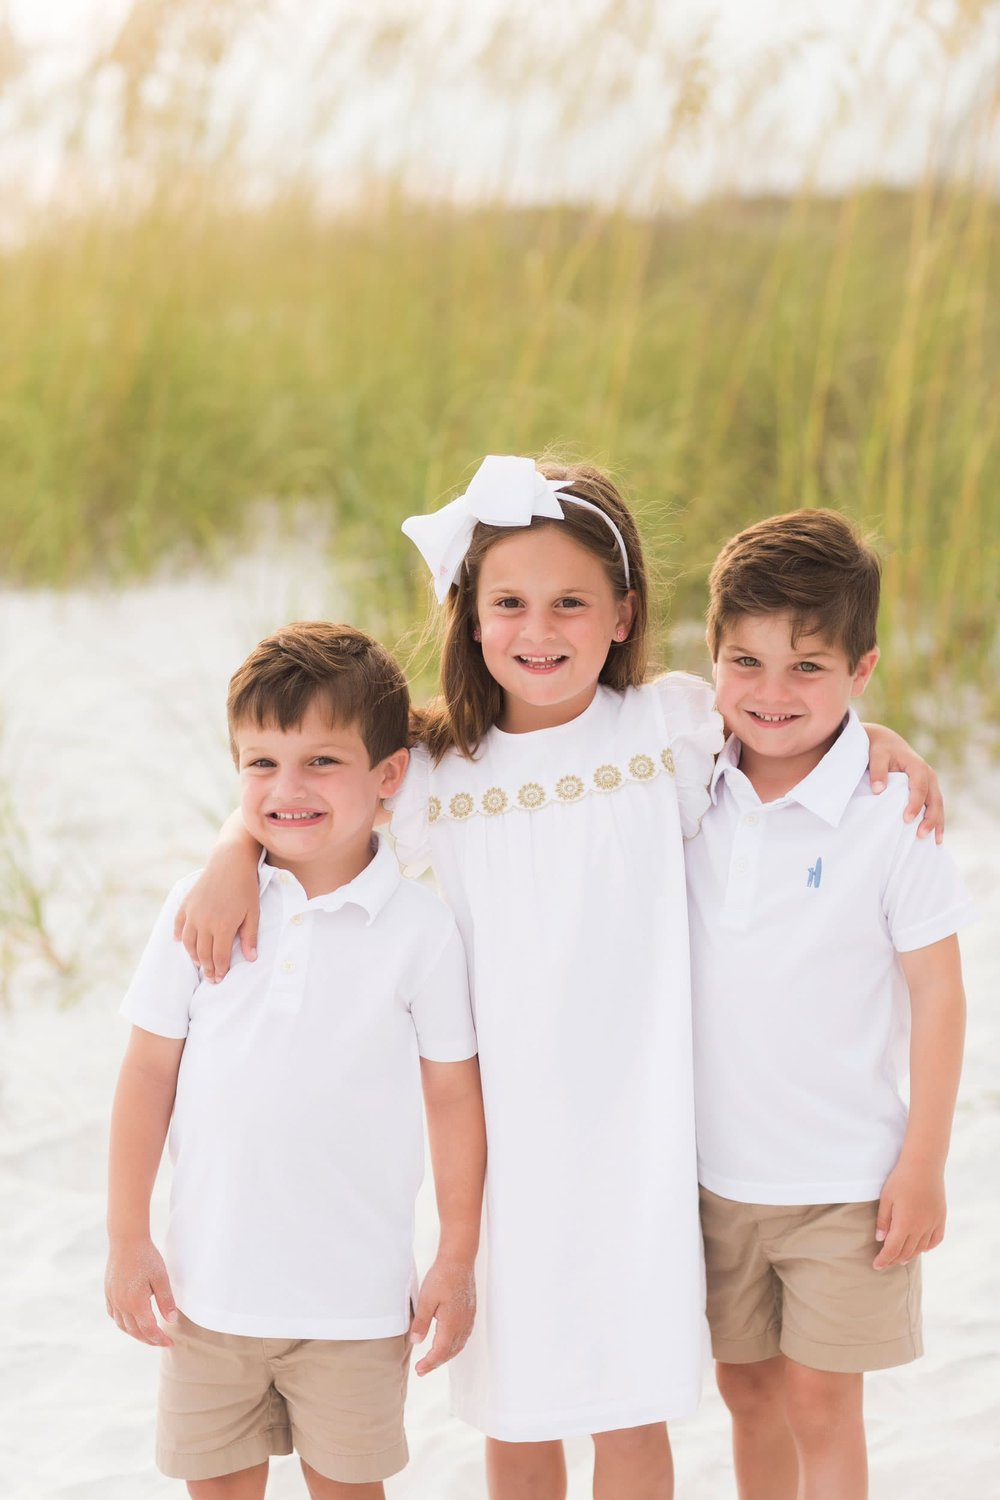 destin beach photographer captures image of family on vacation in 30A florida